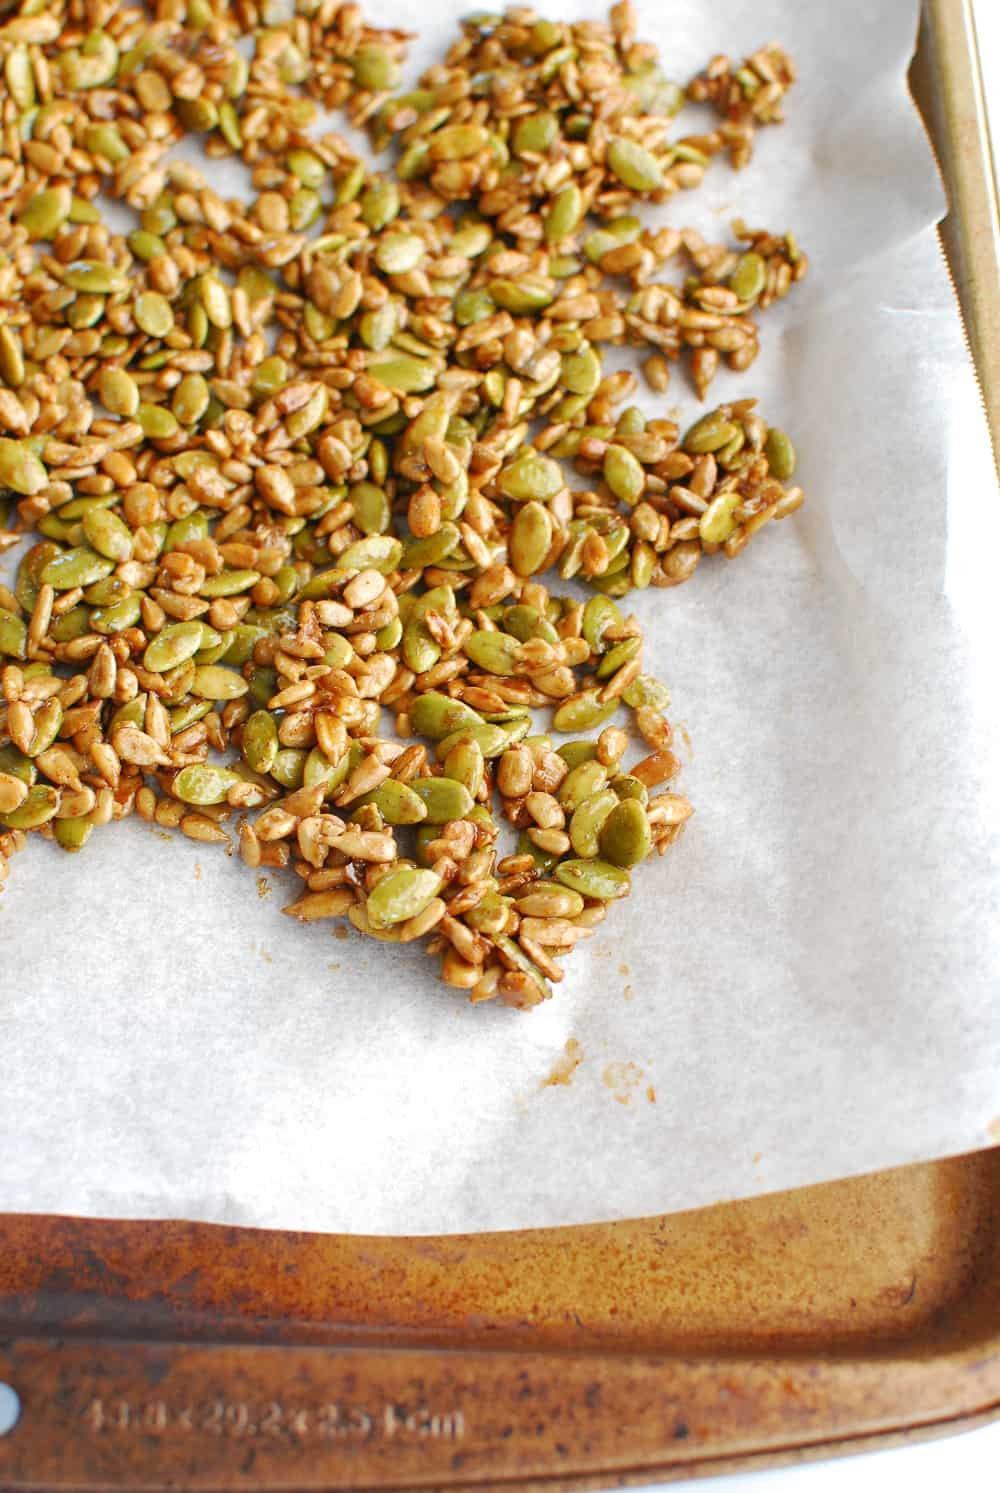 maple glazed pumpkin and sunflower seeds on a baking sheet